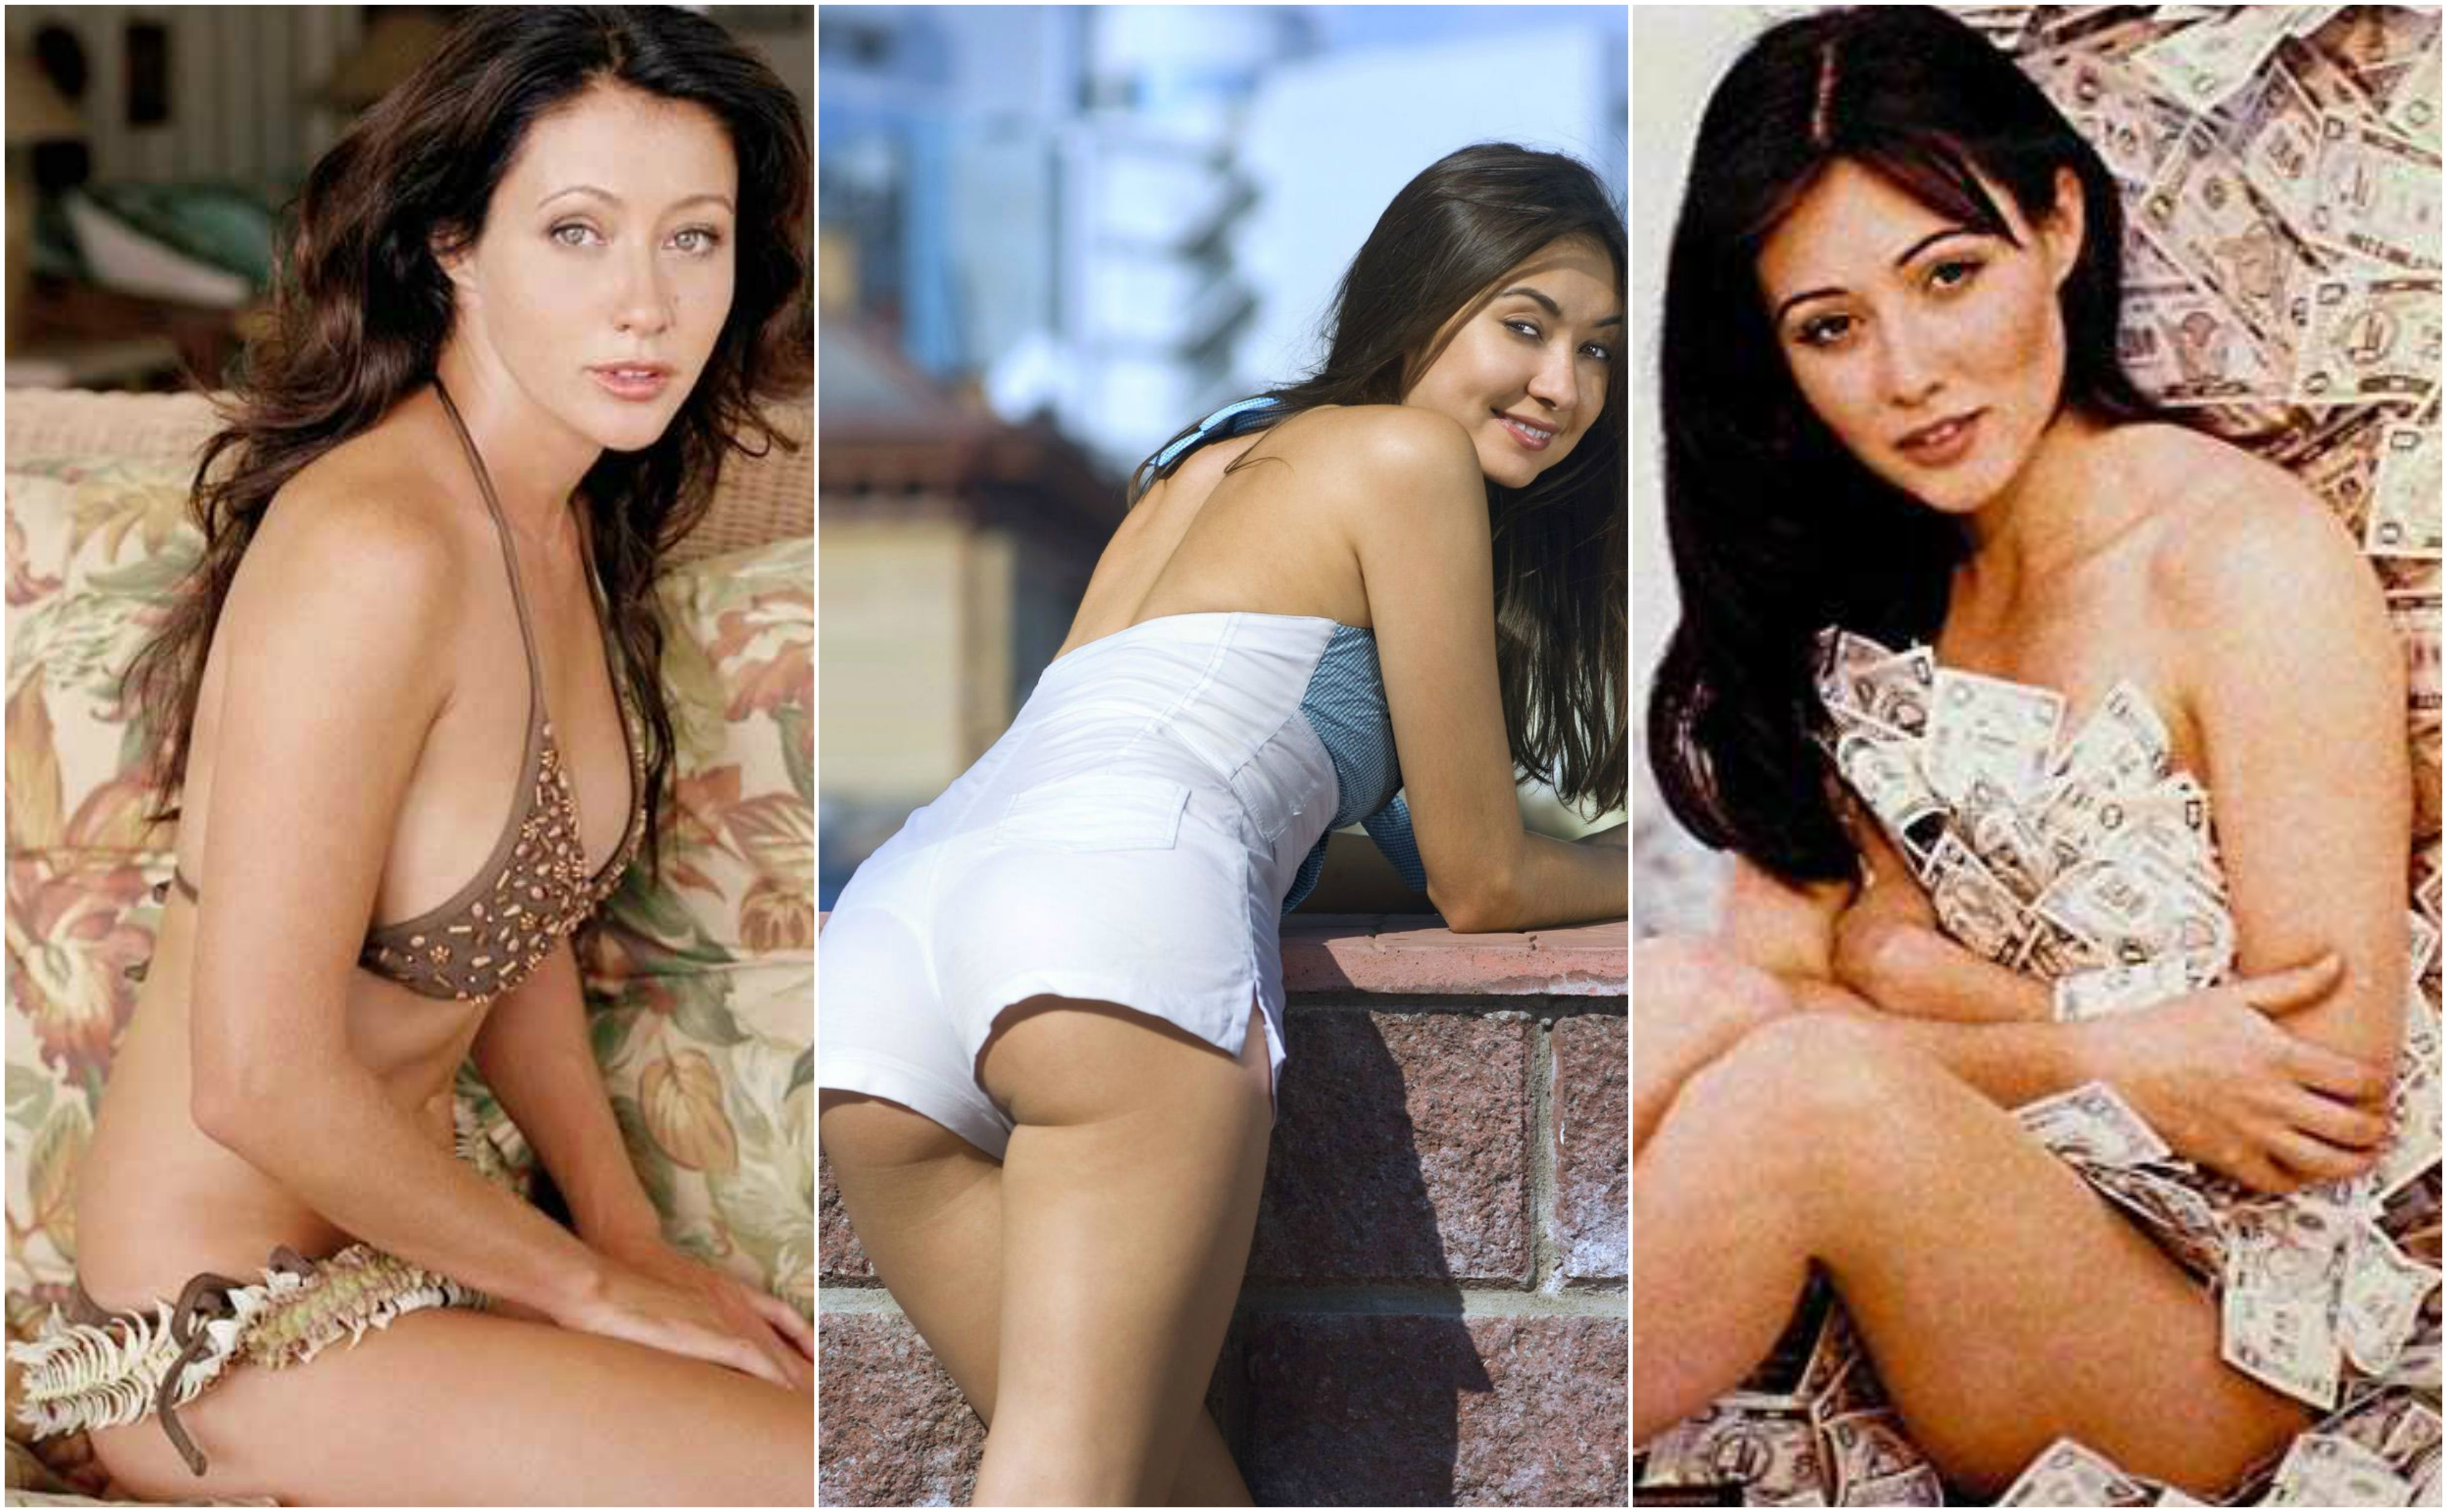 Shannon Doherty Tits photo 7